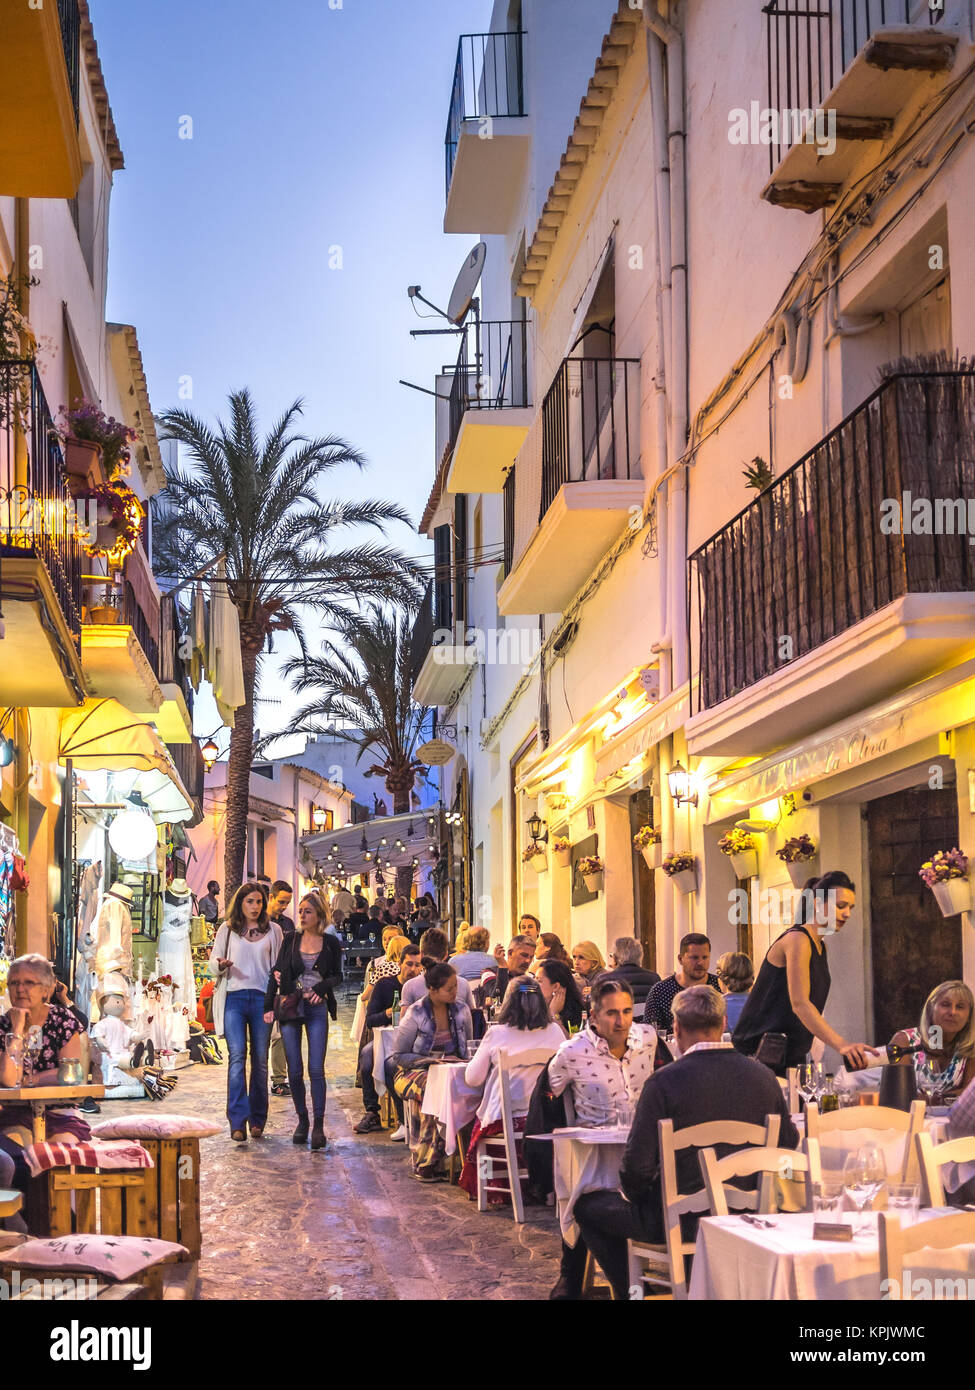 IBIZA, SPAIN - MAY 23, 2015. View of the Ibiza old town streets in Dalt Vila plenty of restaurants and businesses. - Stock Image